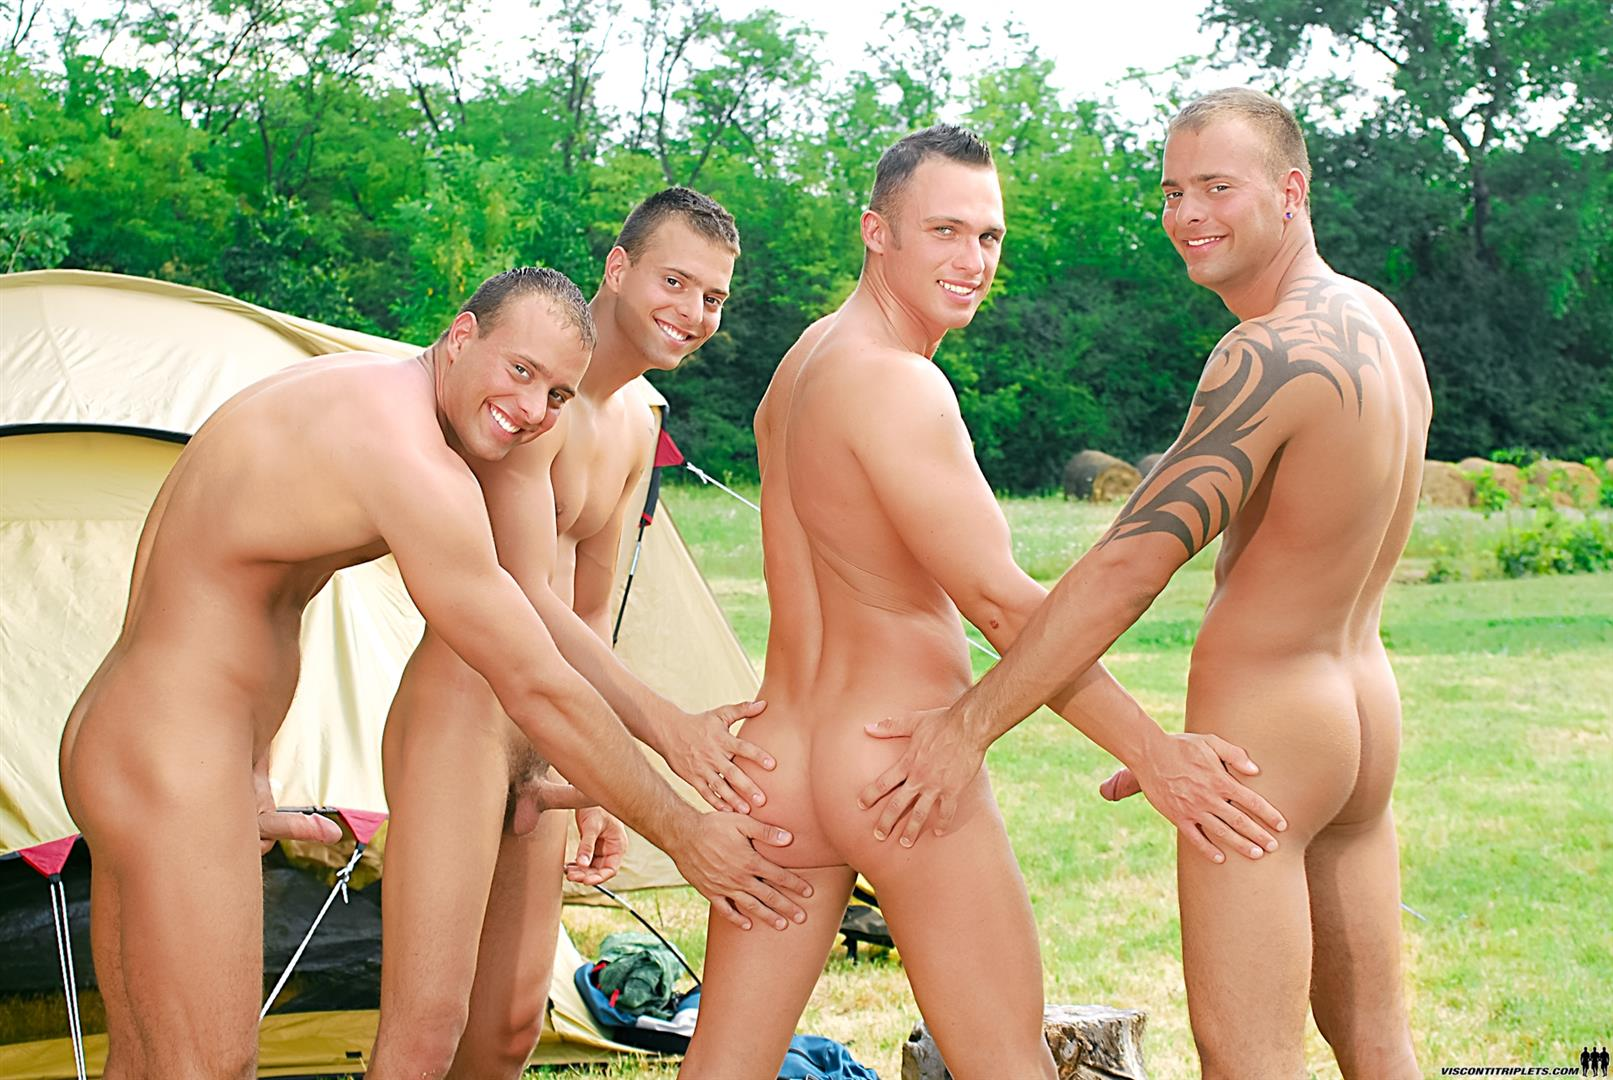 Visconti-Triplets-Jason-Visconti-Jimmy-Visconti-Joey-Visconti-Giuseppe-Pardi-Fucking-During-A-Camping-Trip-Amateur-Gay-Porn-04 Visconti Triplets Tag Team Some Muscle Ass While Camping